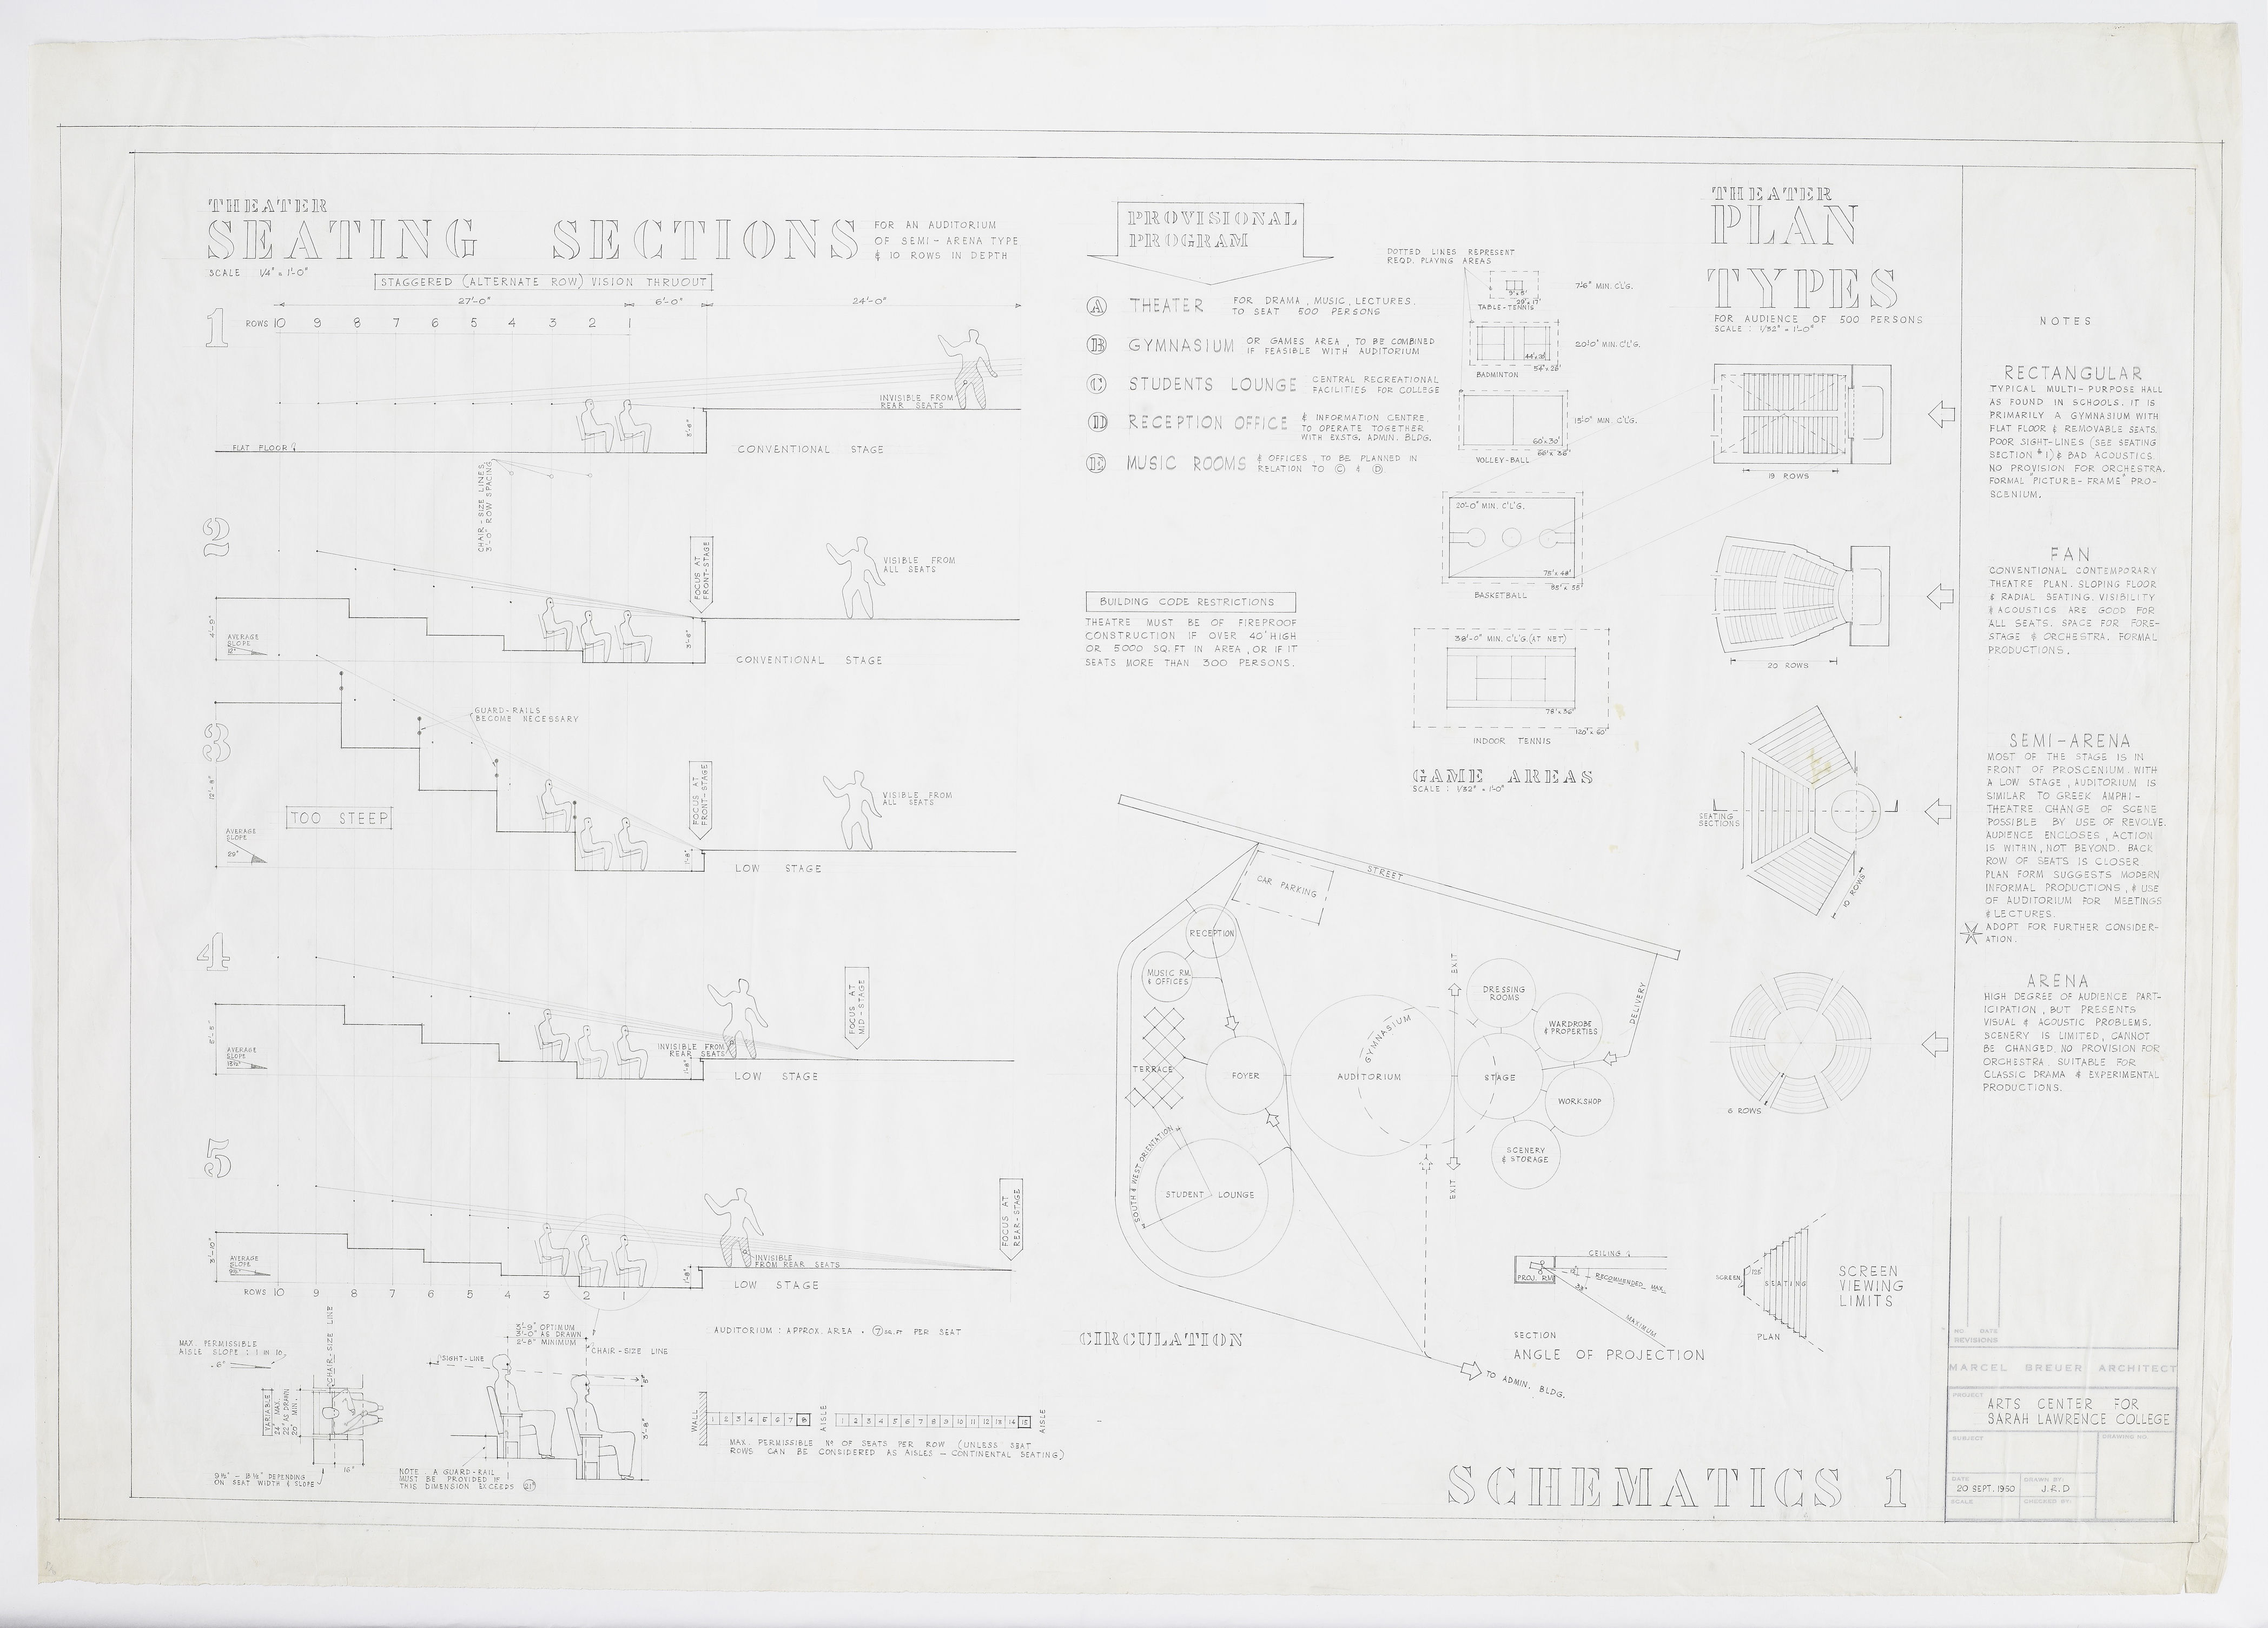 Click to select: Preliminary Plans (Schematics 1-4)